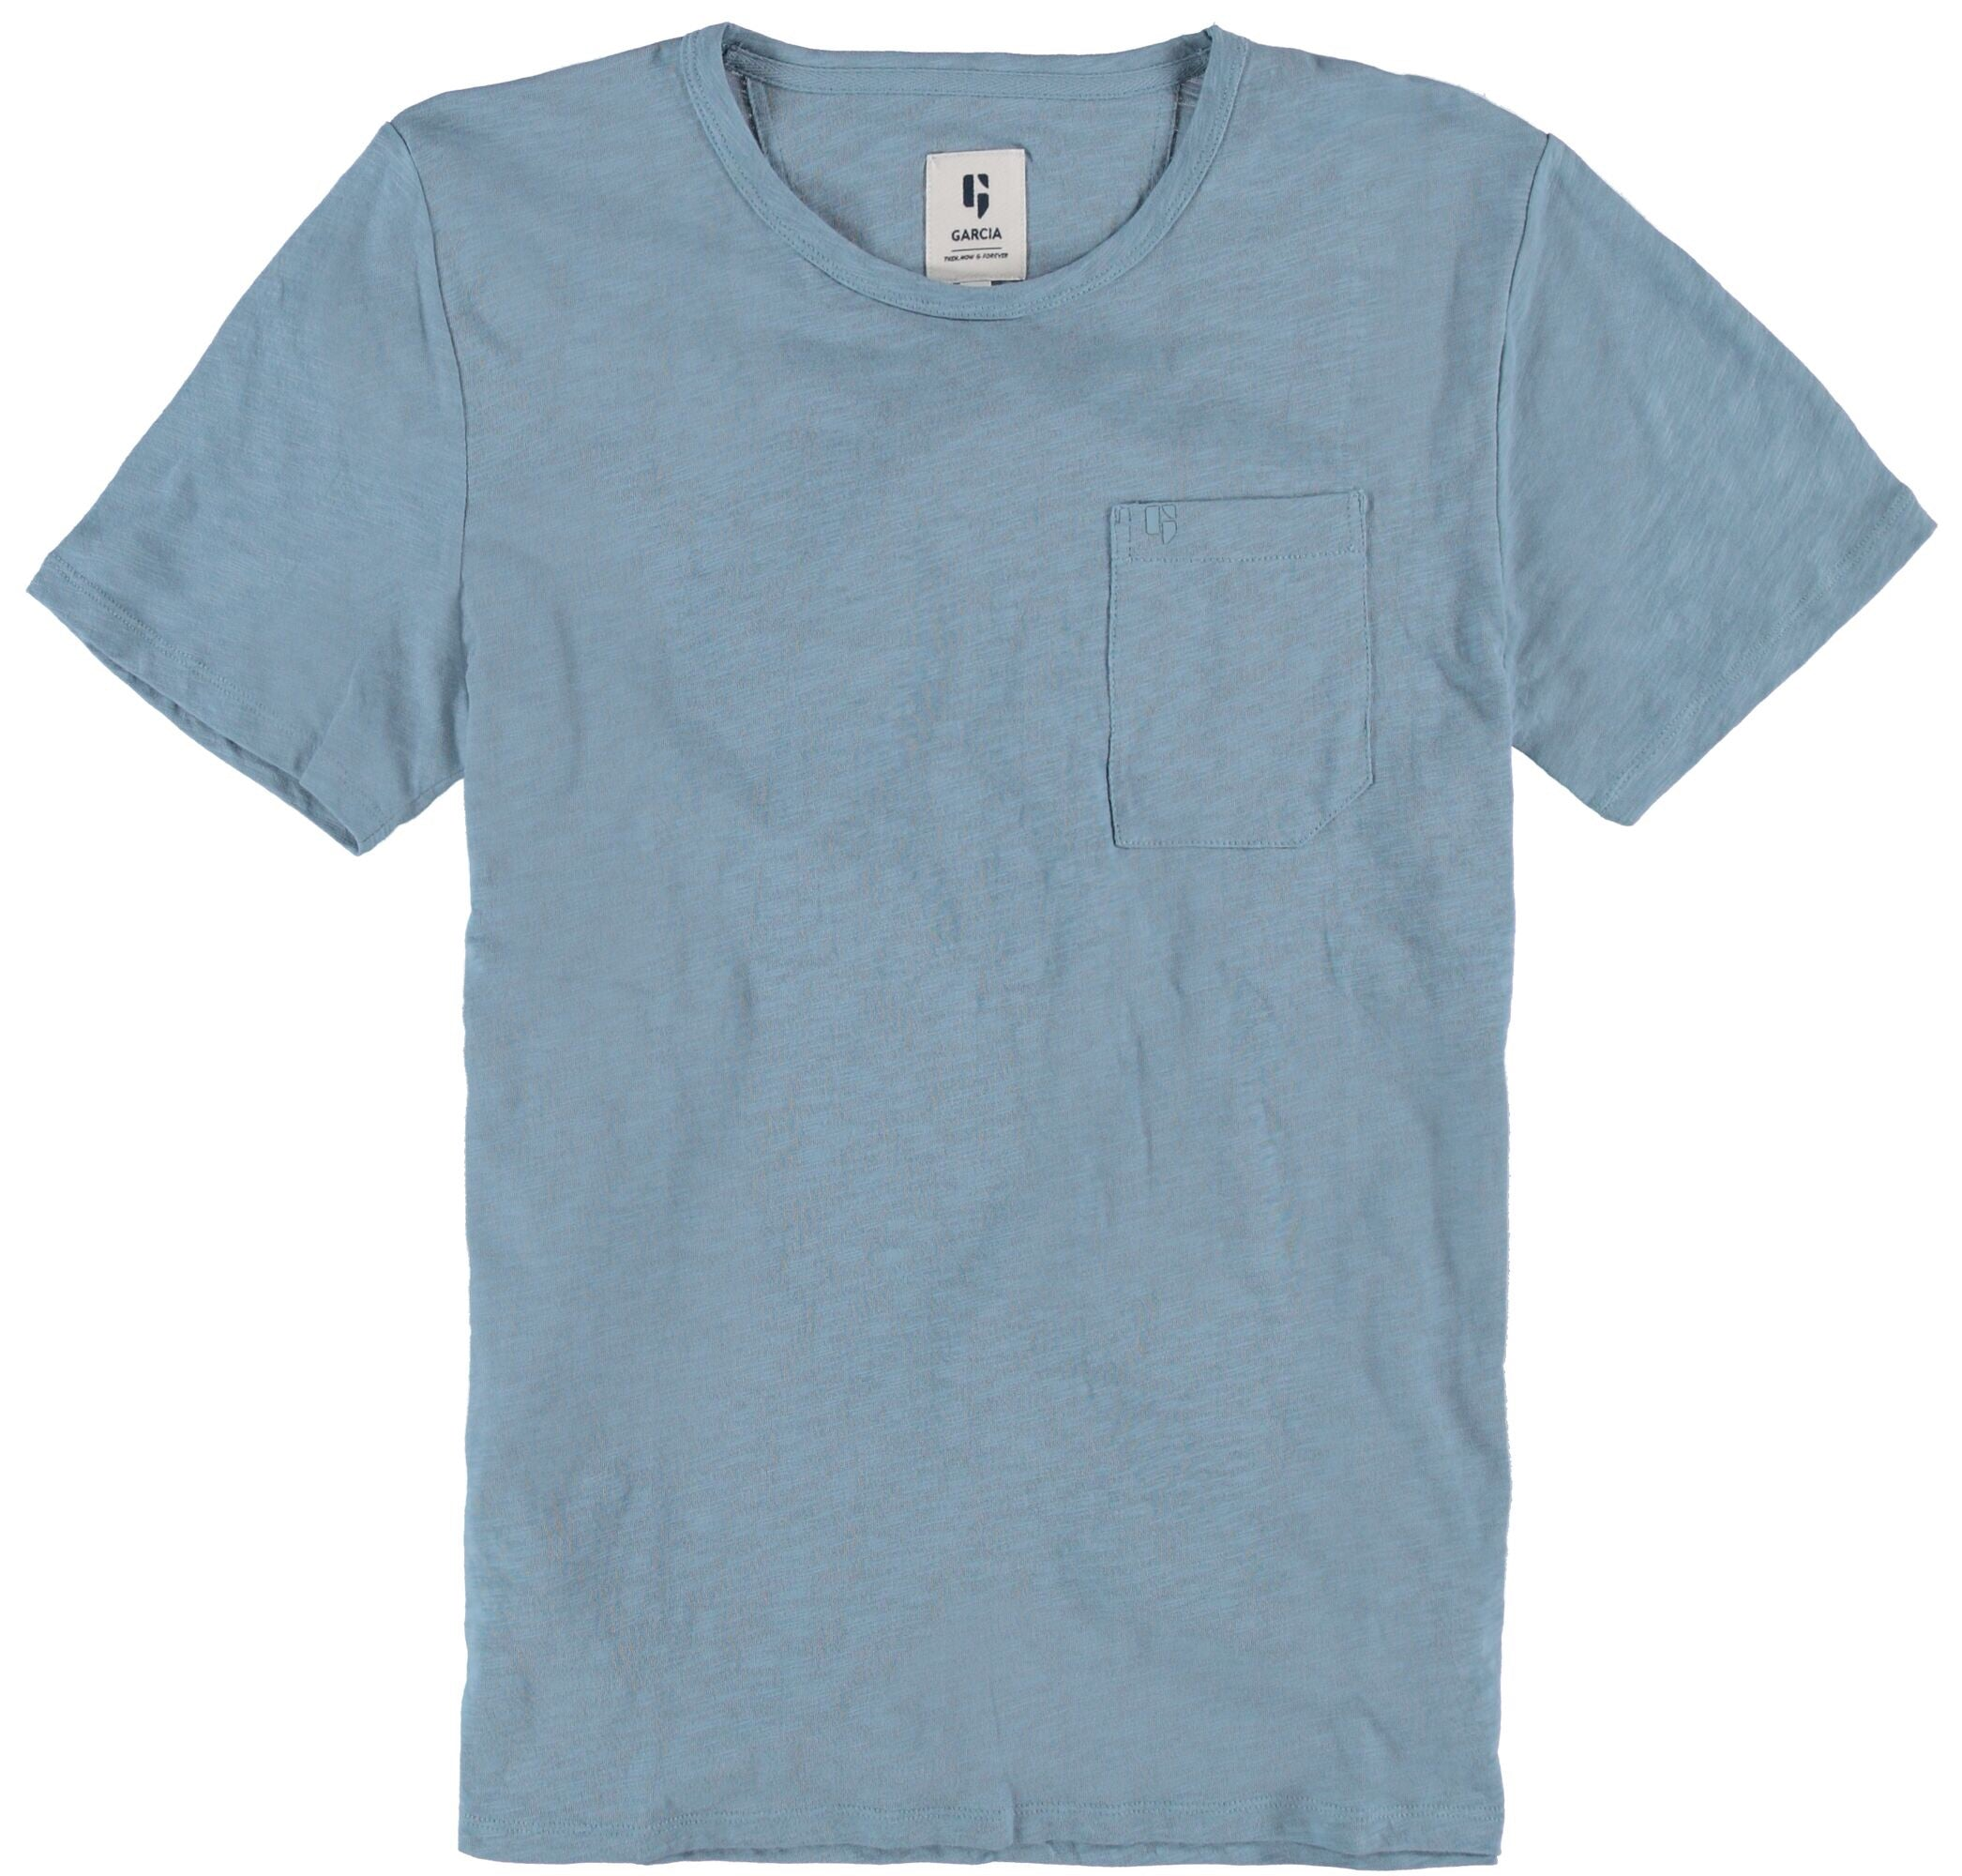 Garcia Organic Cotton Mineral-Blue T-Shirt